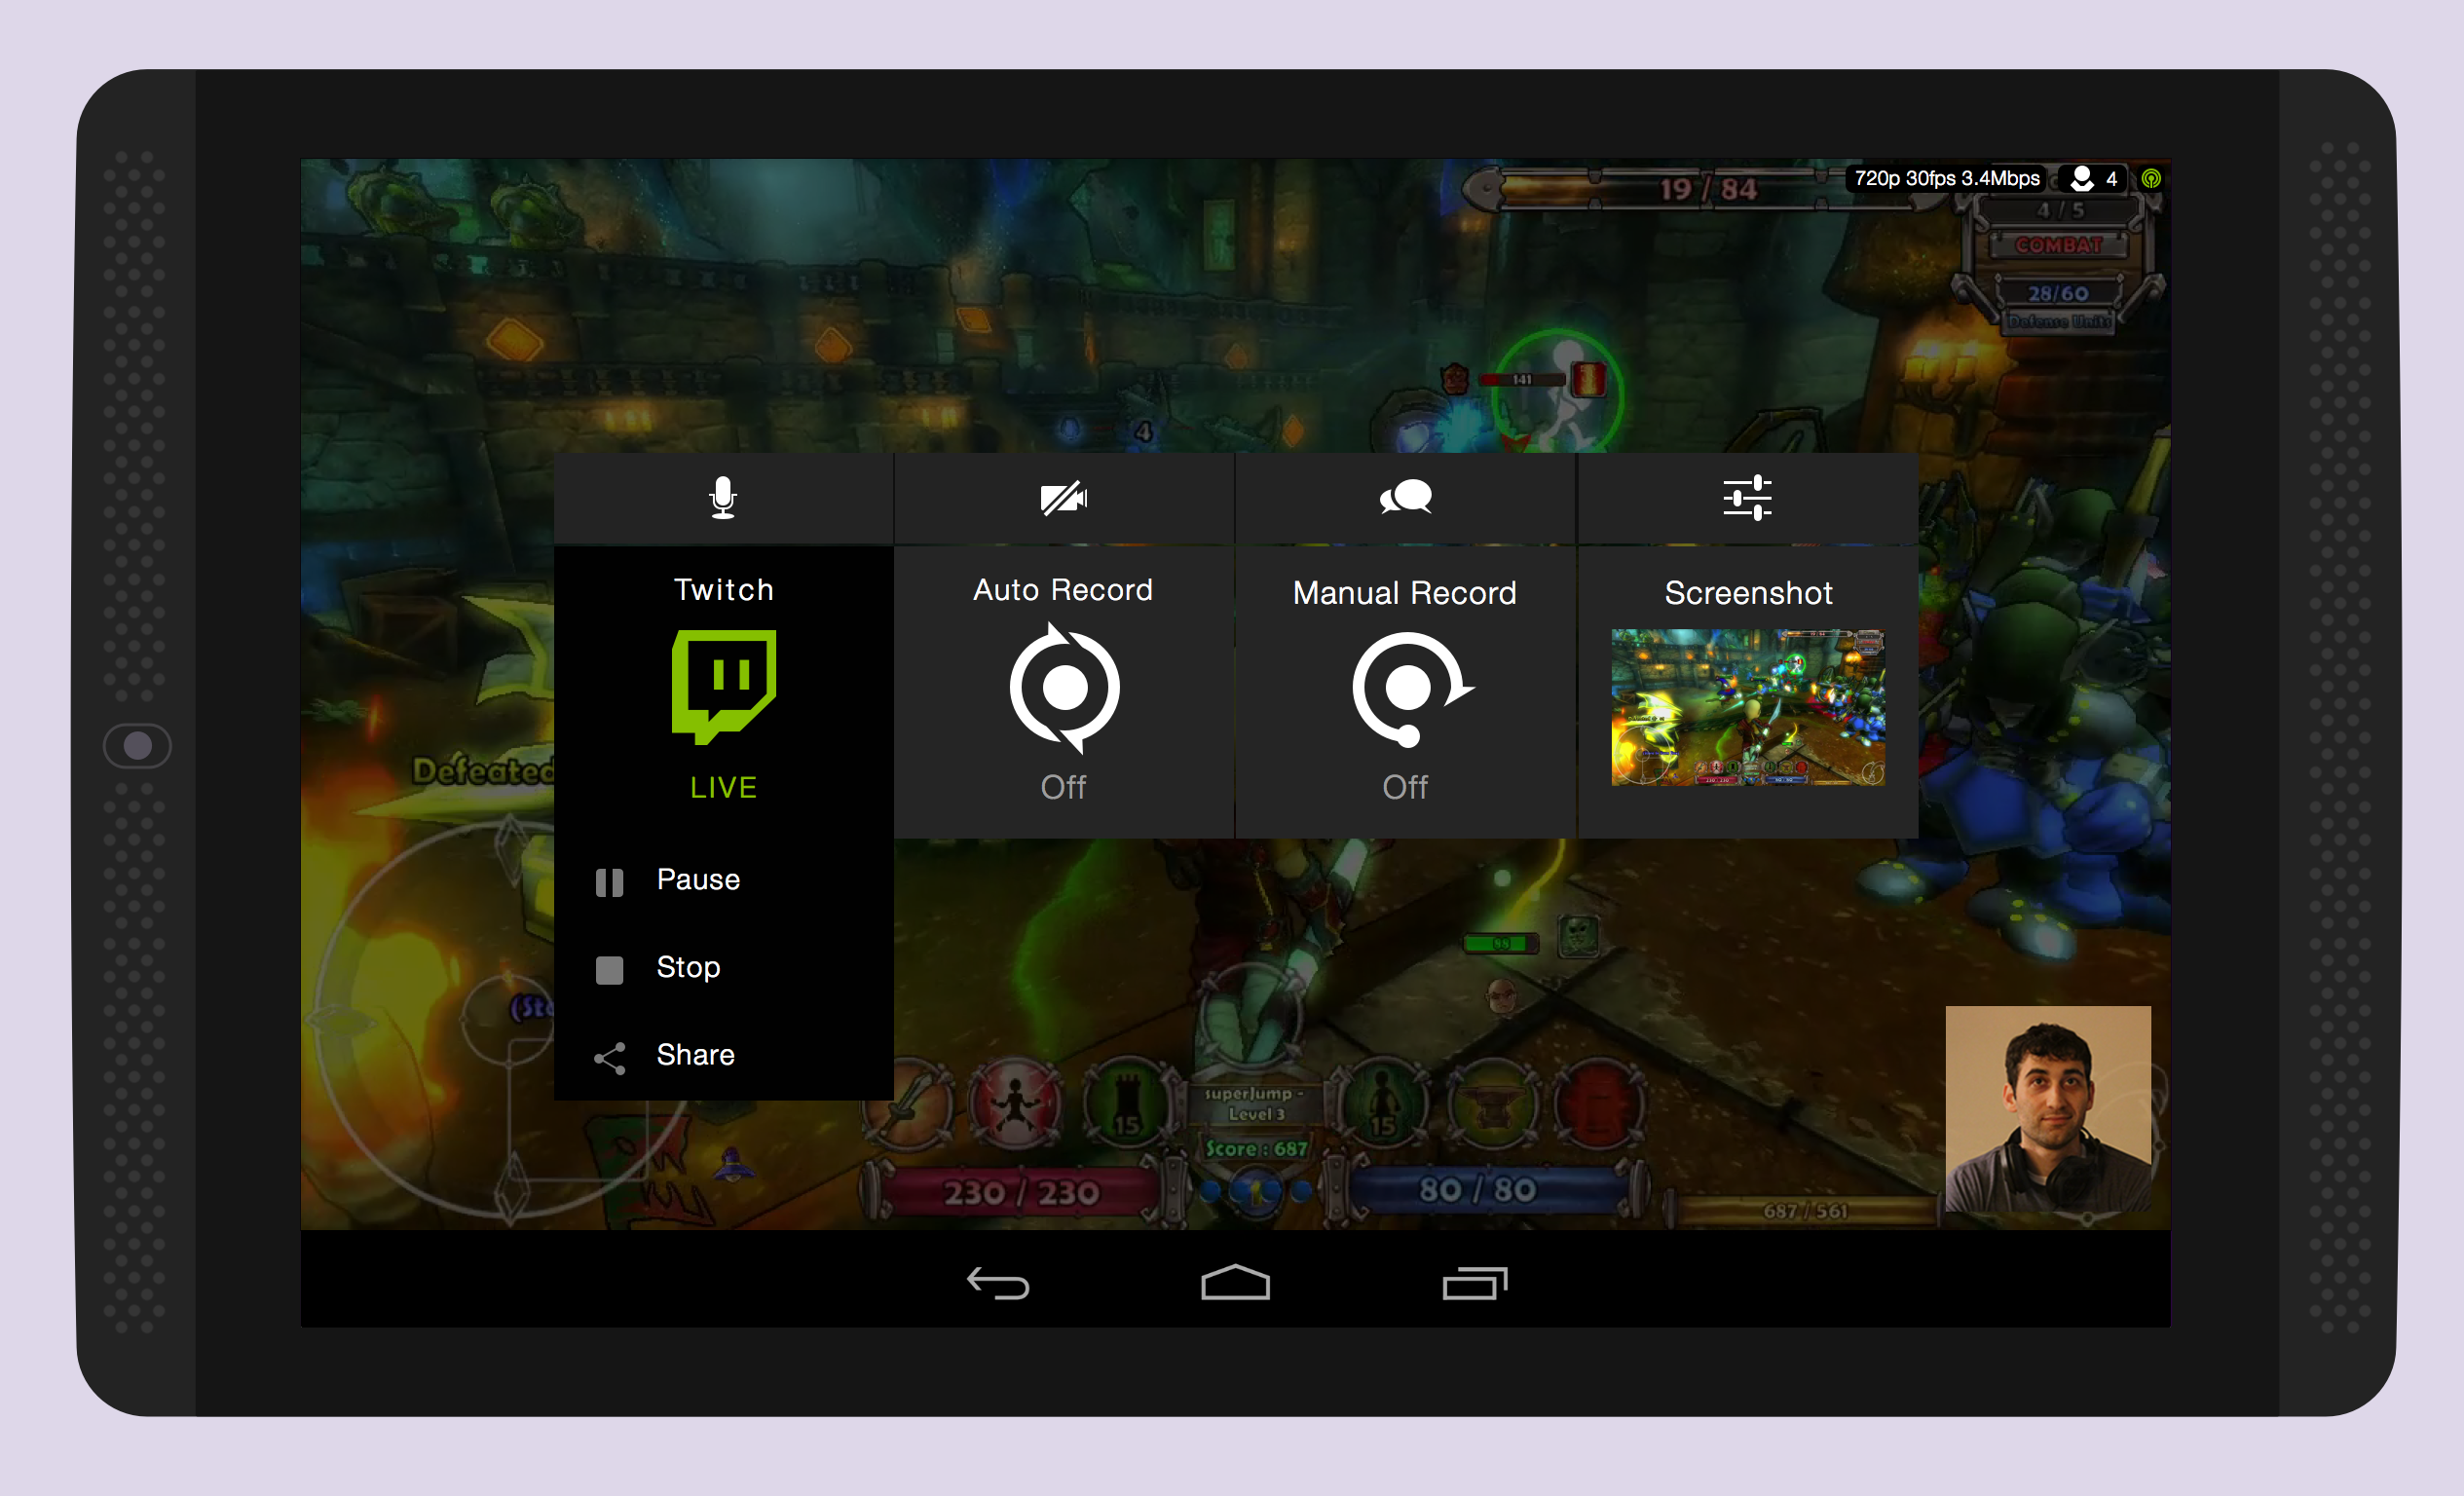 Twitch Broadcasting Comes to the NVIDIA SHIELD Tablet